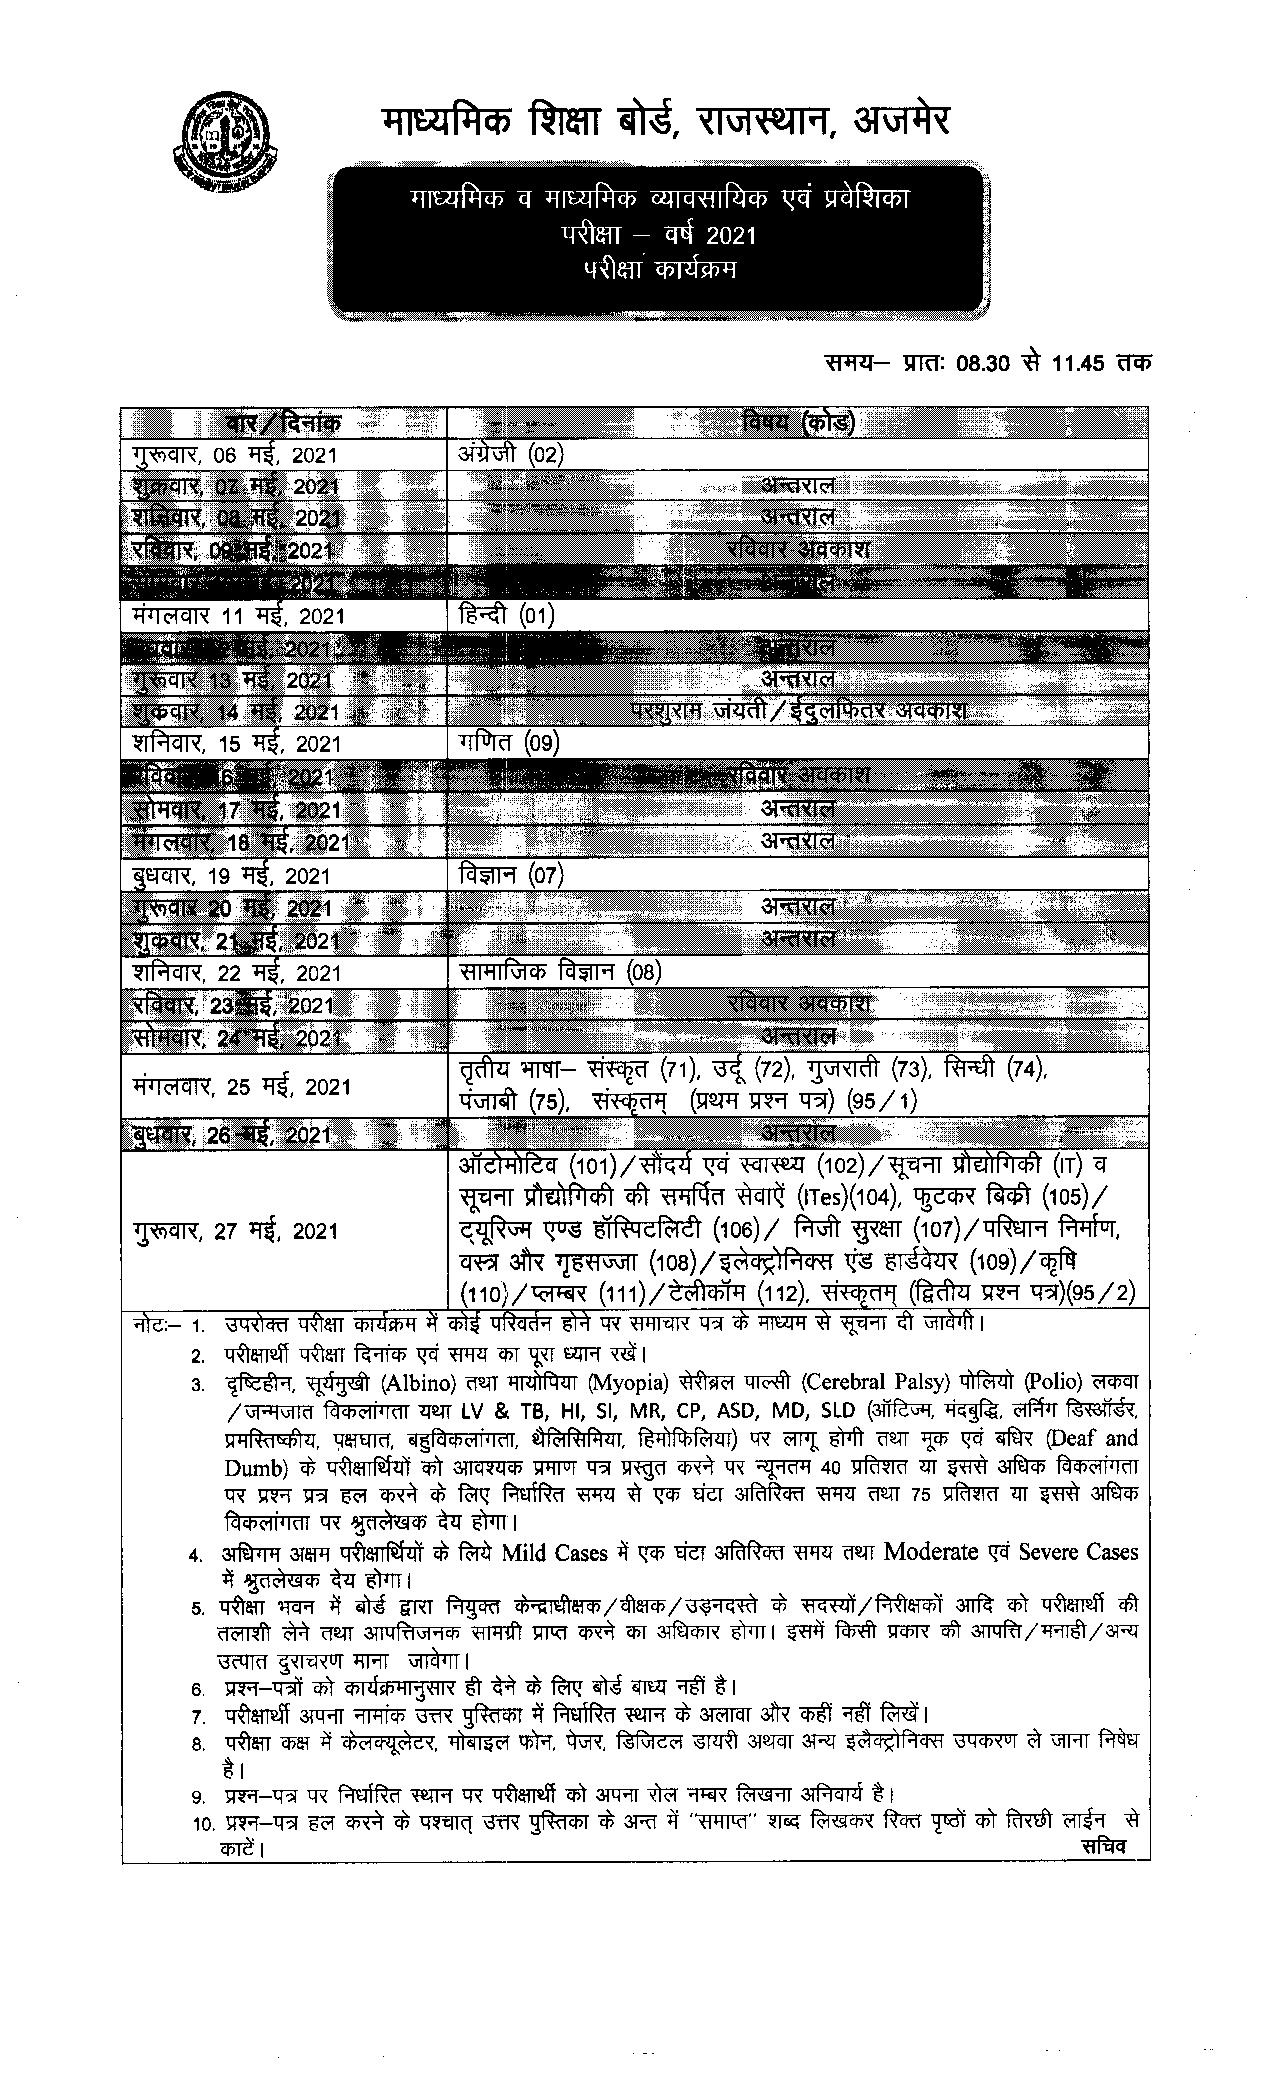 RBSE 12th Exam Schedule 2021